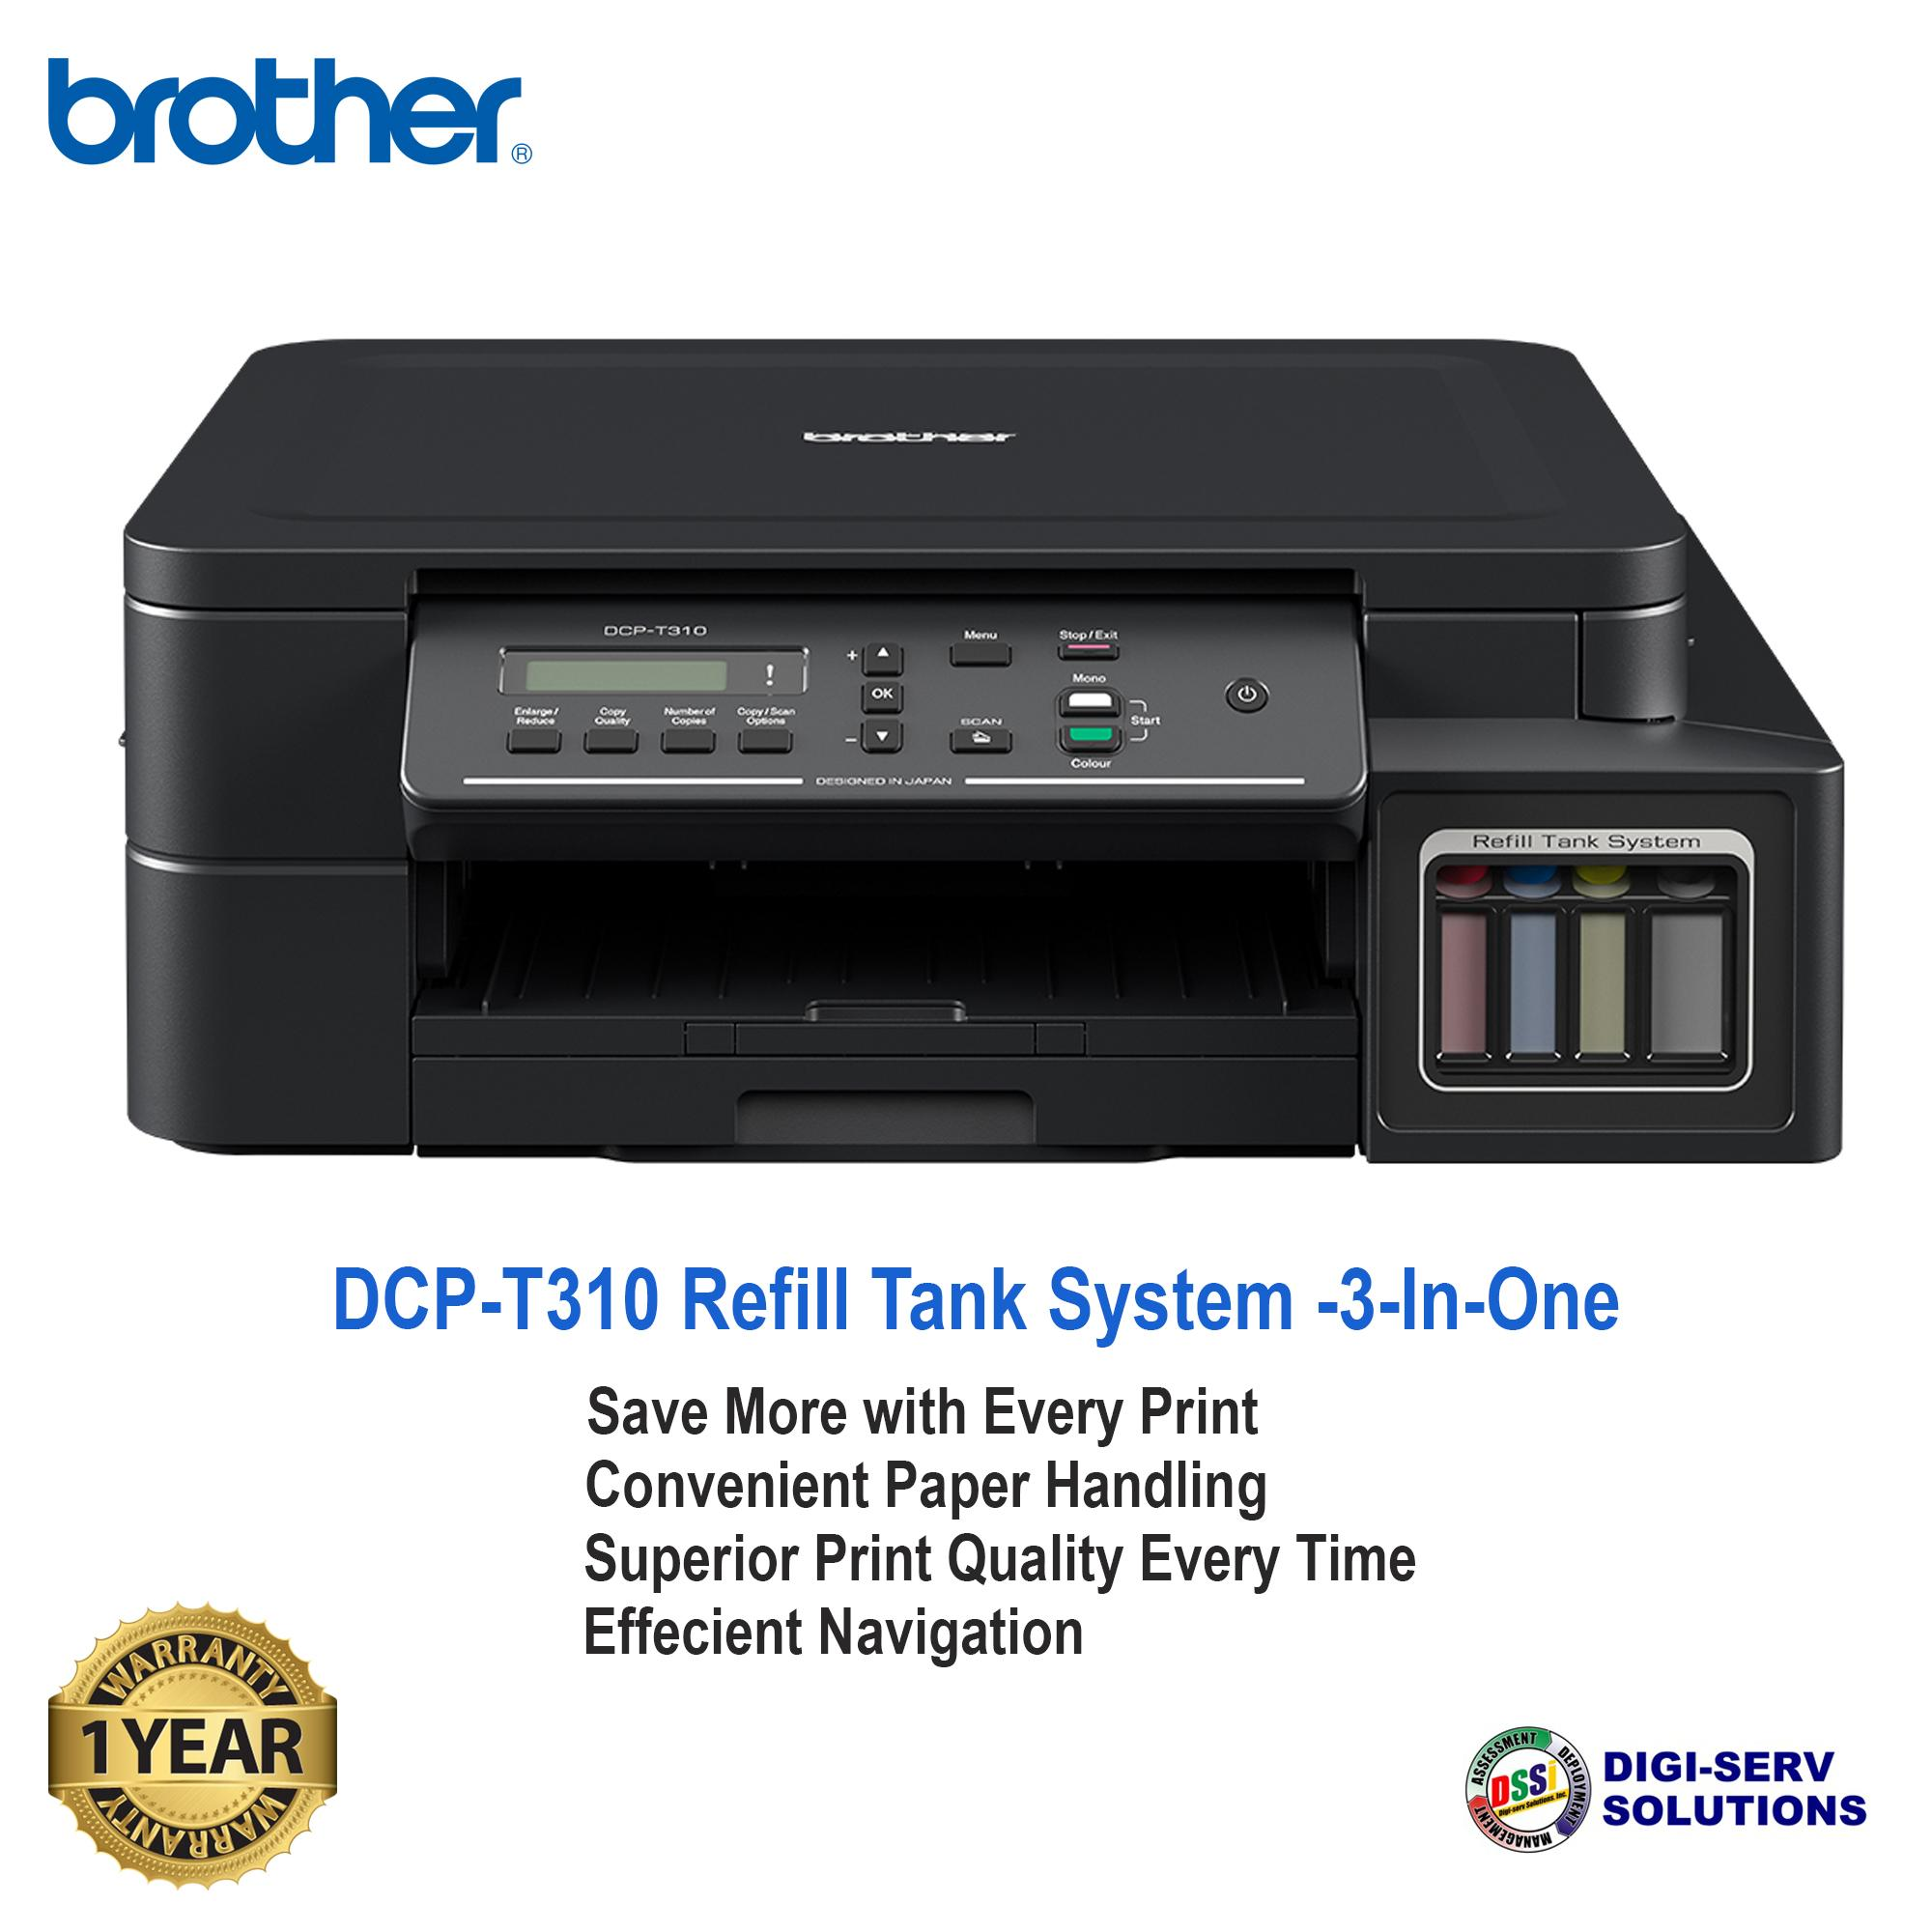 BROTHER DCP-165C SCANNER RESOLUTION IMPROVEMENT DRIVERS WINDOWS XP